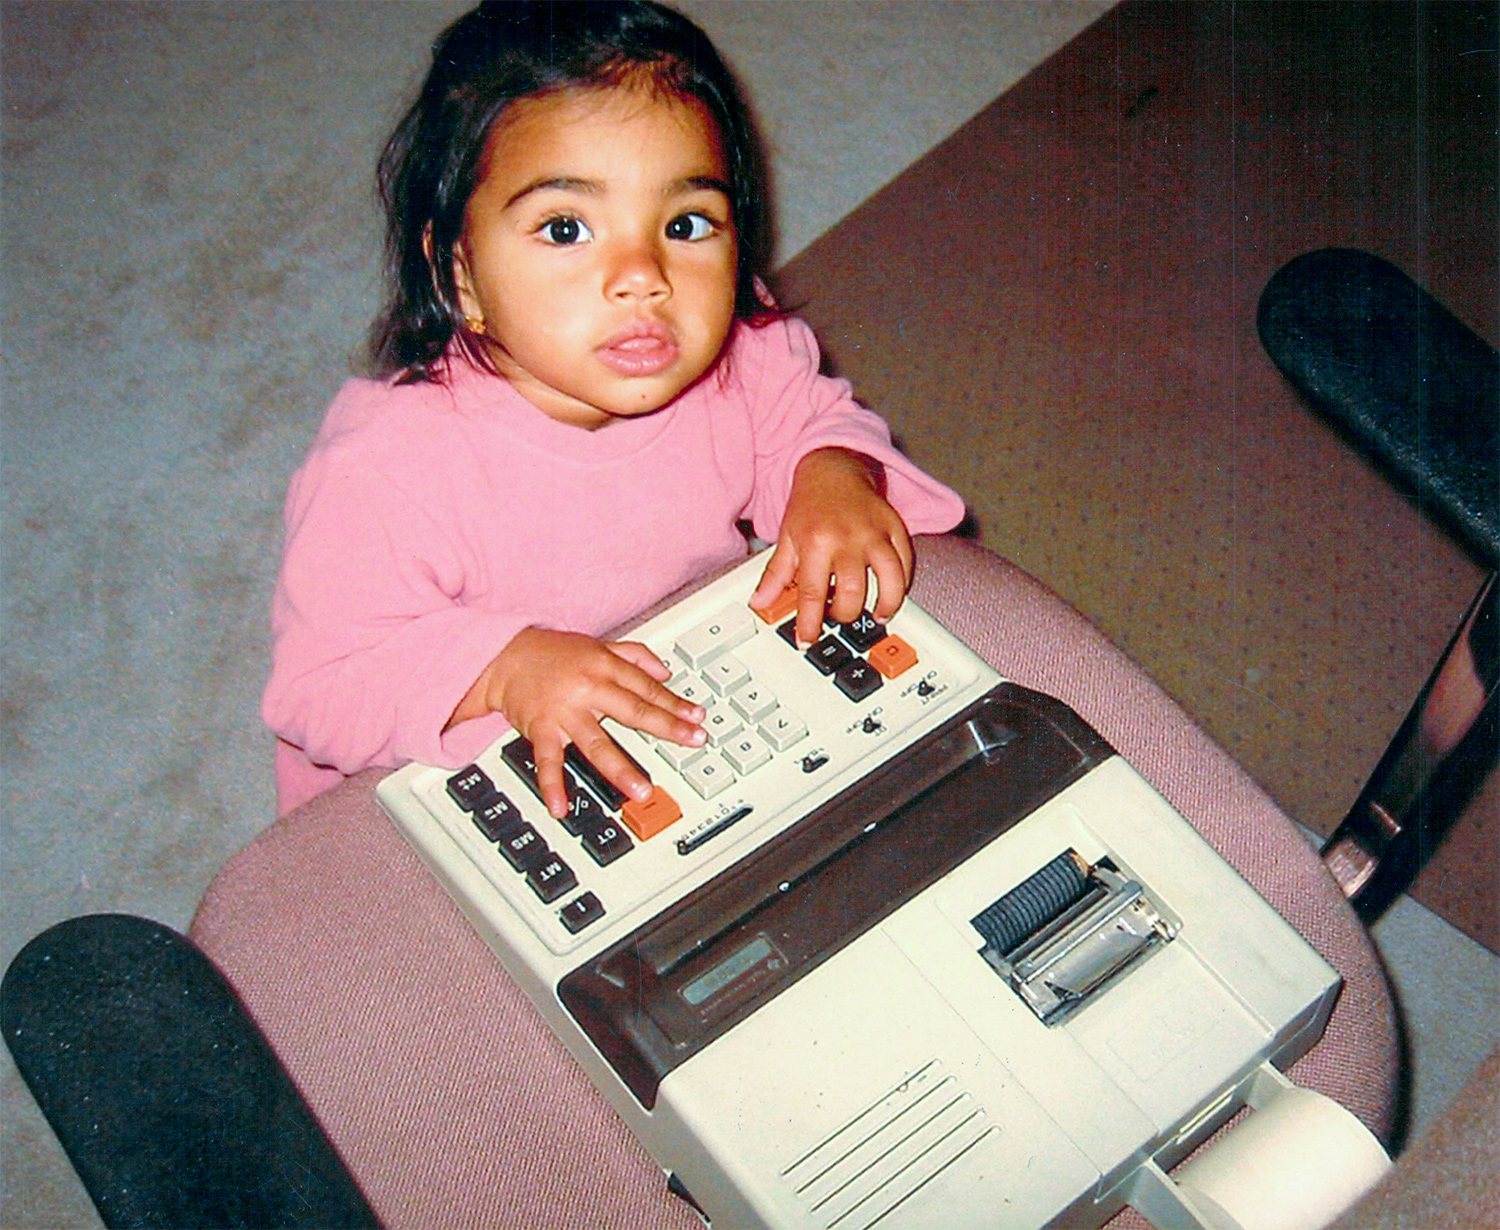 Sangeeta Bhatia, age 2, places both hands on a large calculator.